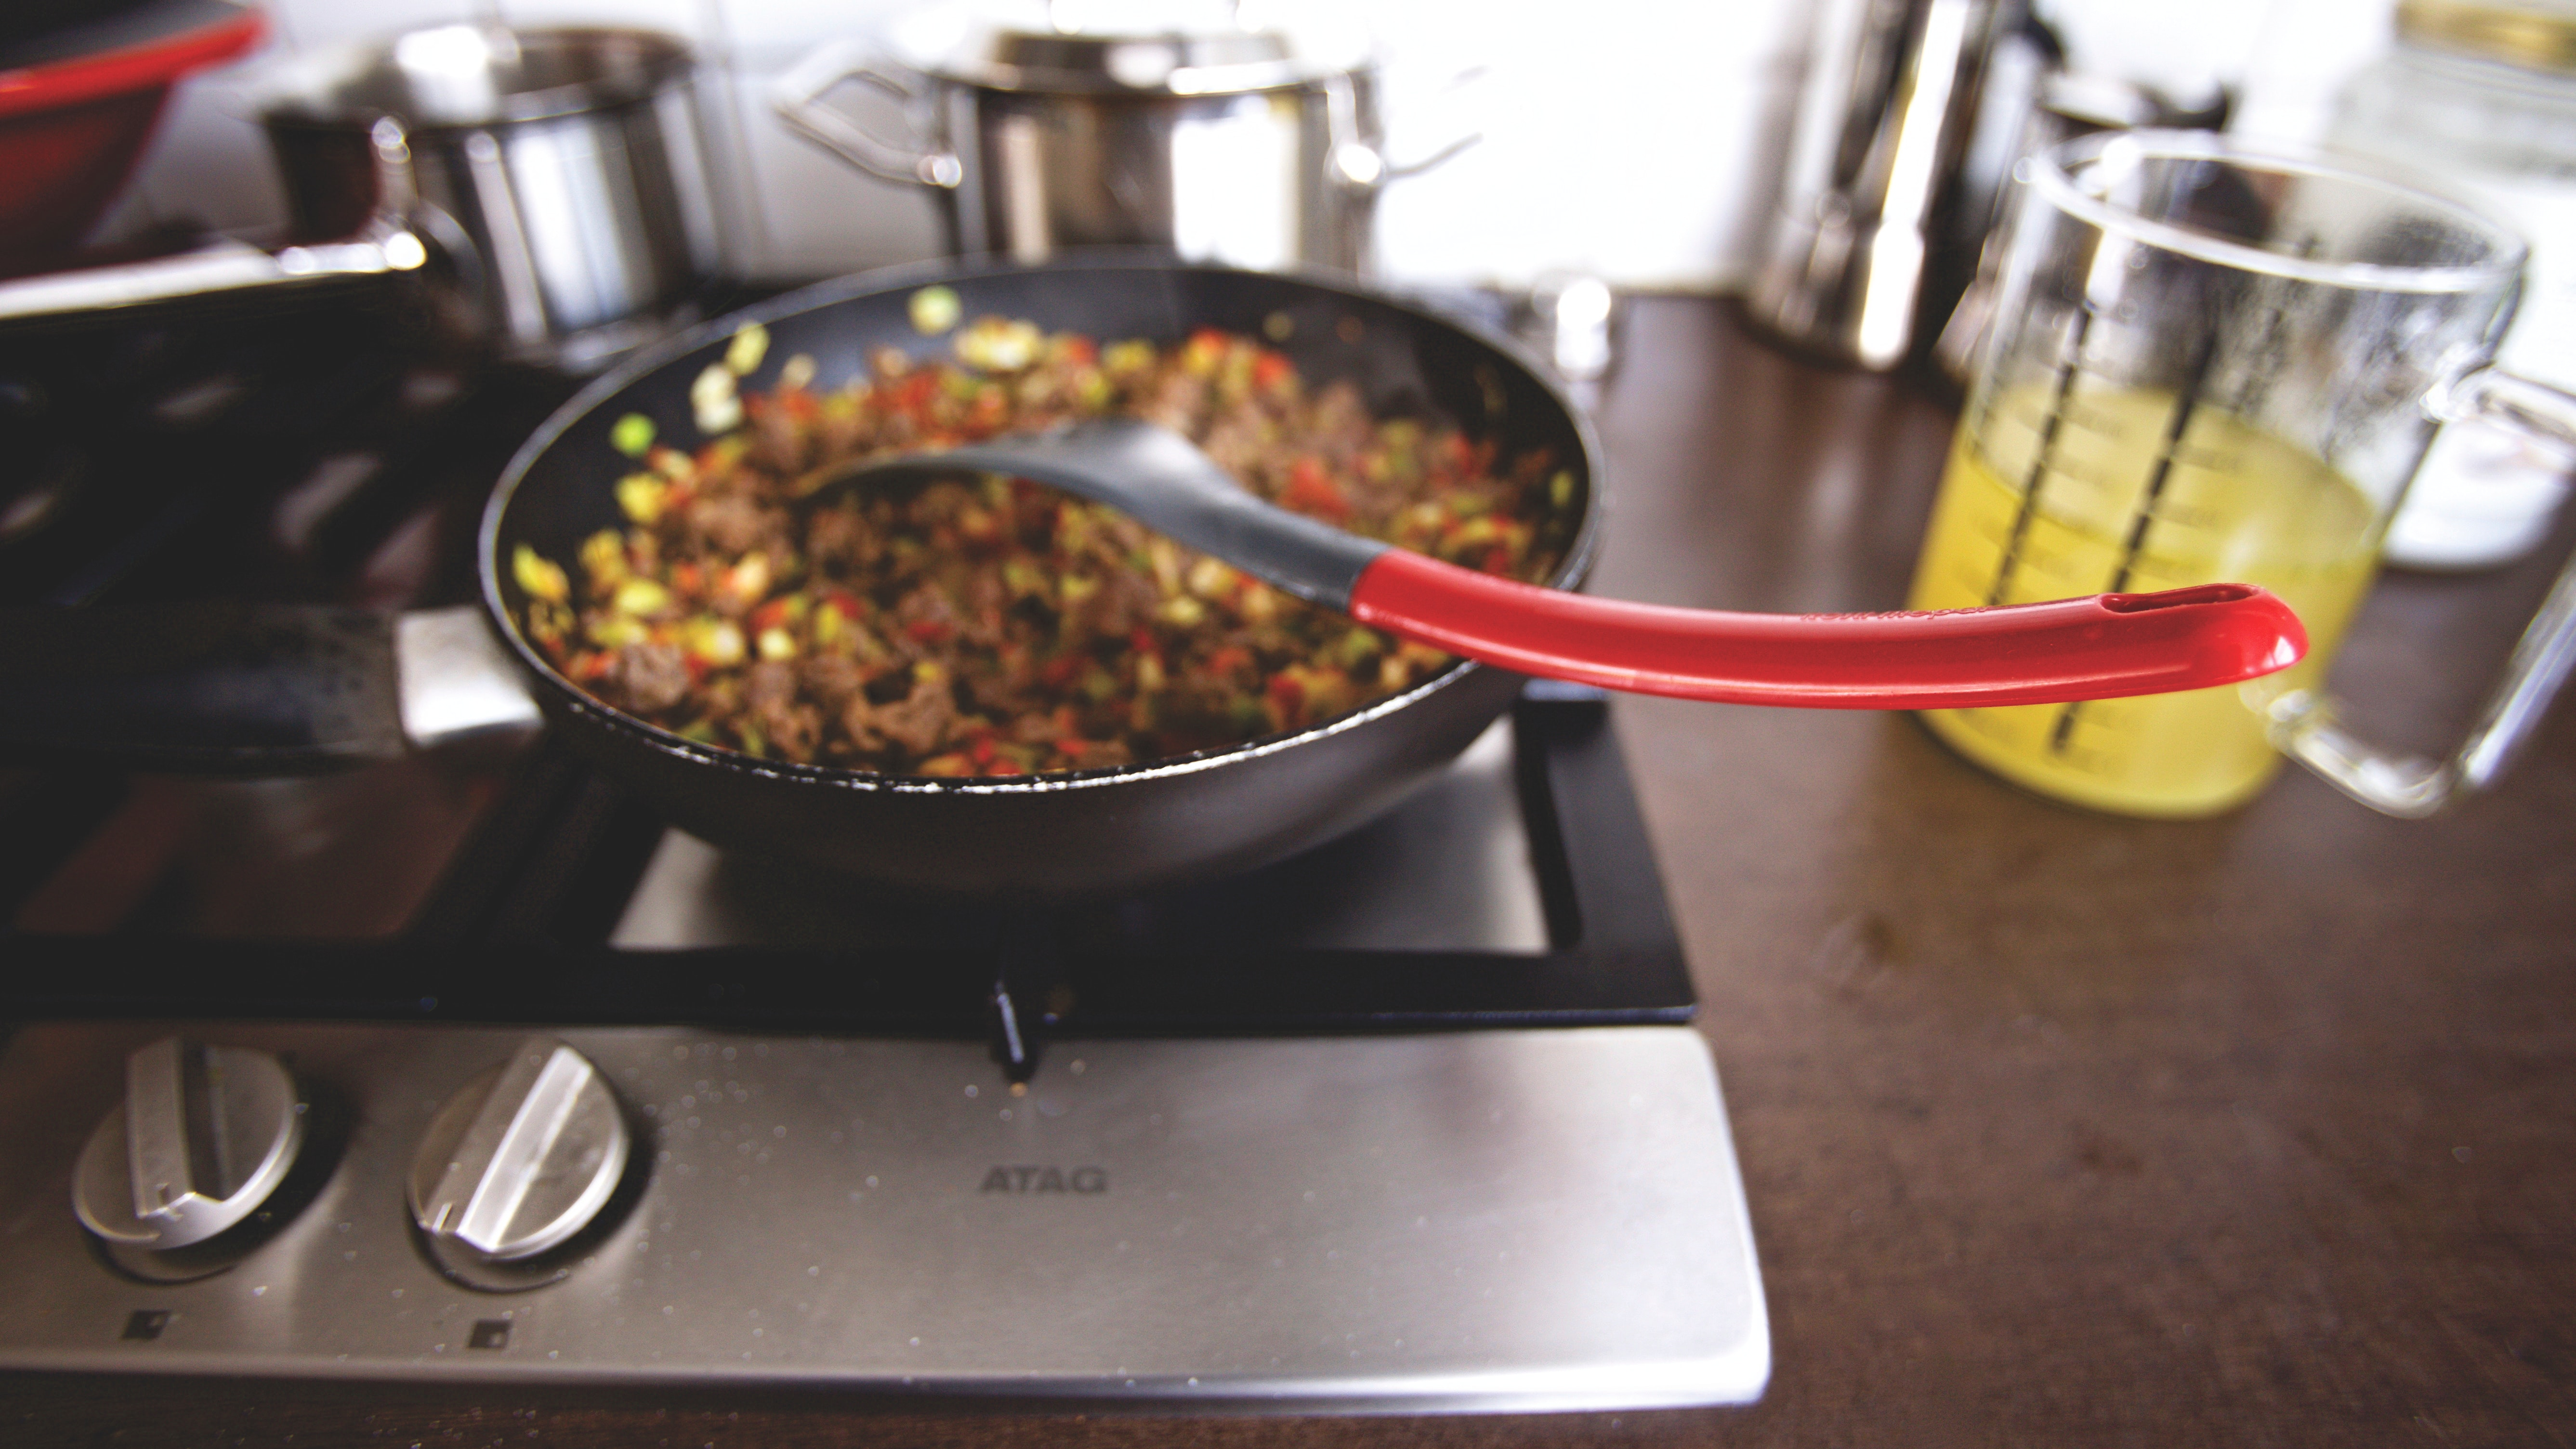 Dish cooking on black non stick pan on a burner photo